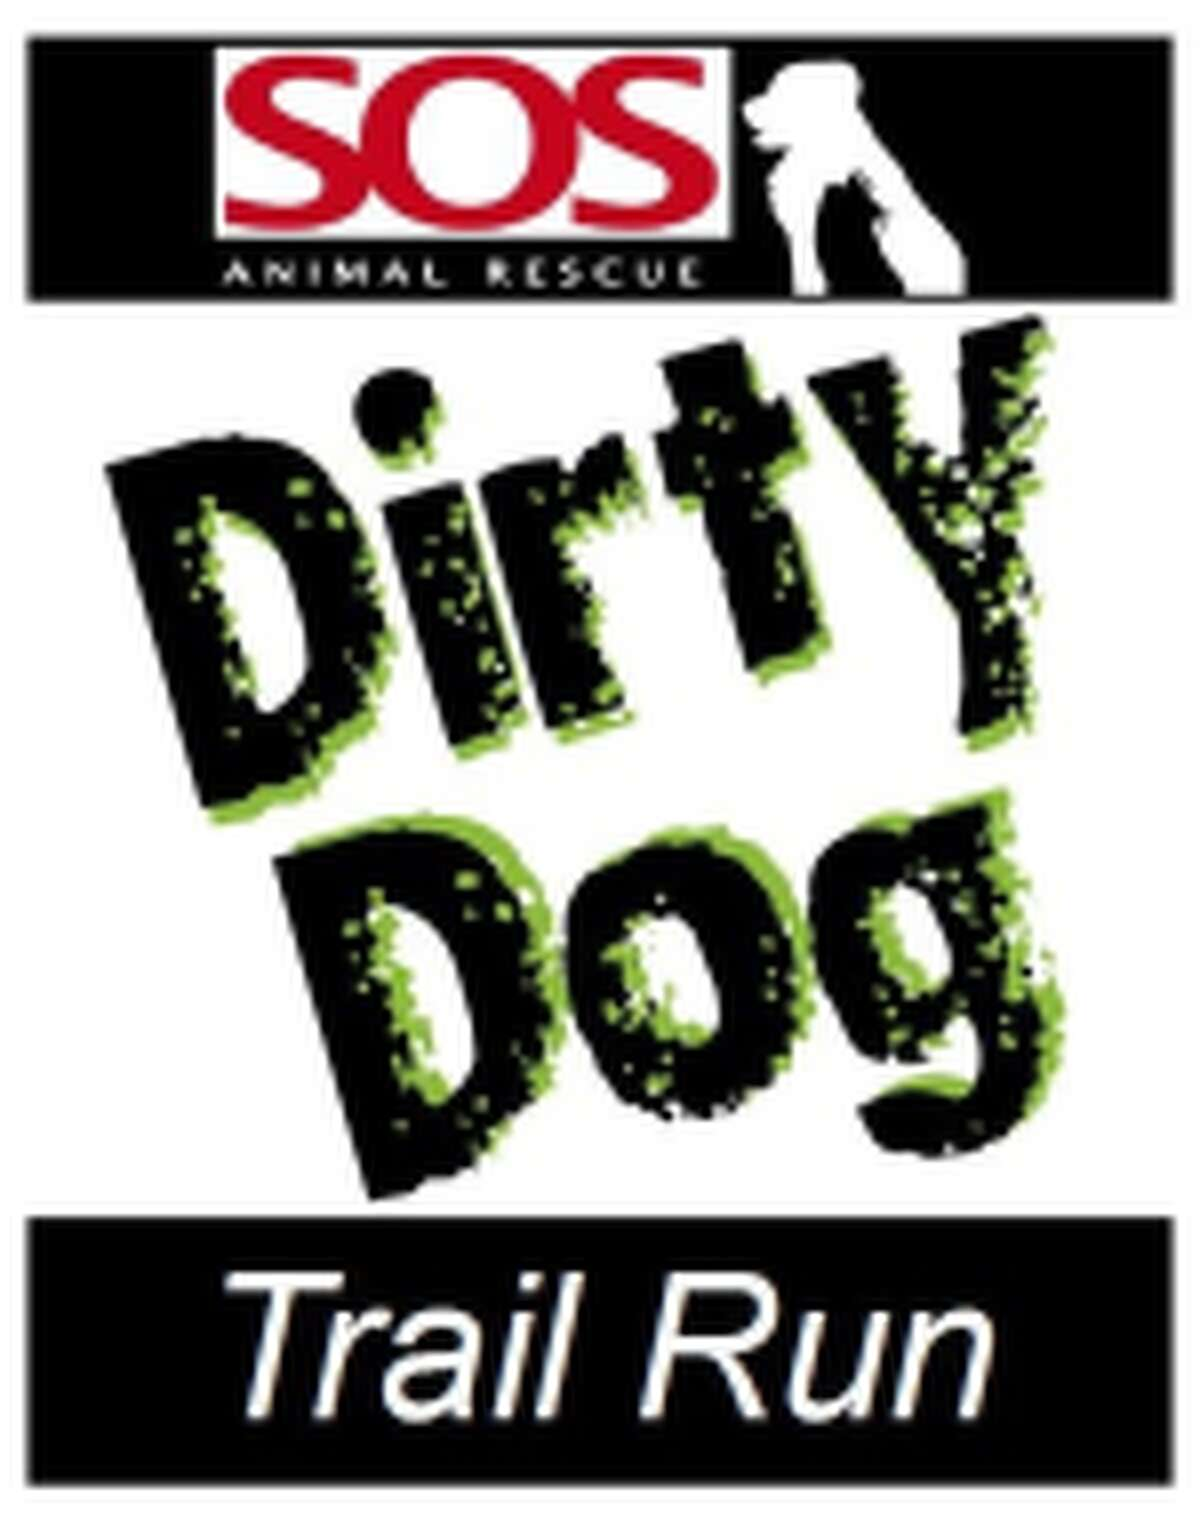 Dozens of people participated in the Dirty Dog Trail Run on Saturday at City Forest in Midland.